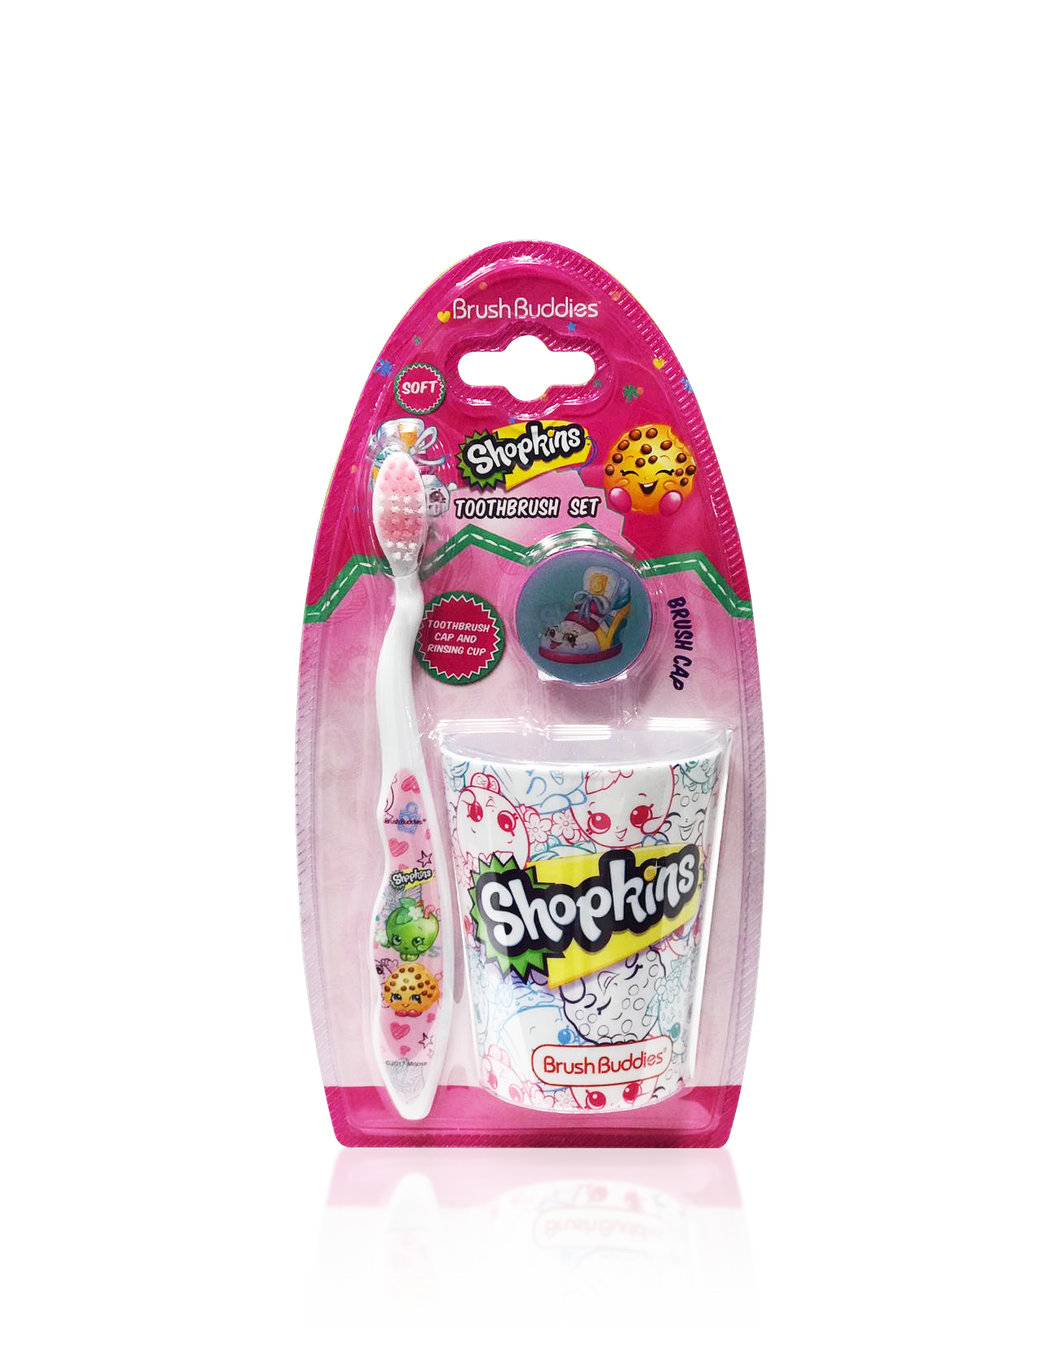 Brush Buddies Shopkins Toothbrush Gift Set